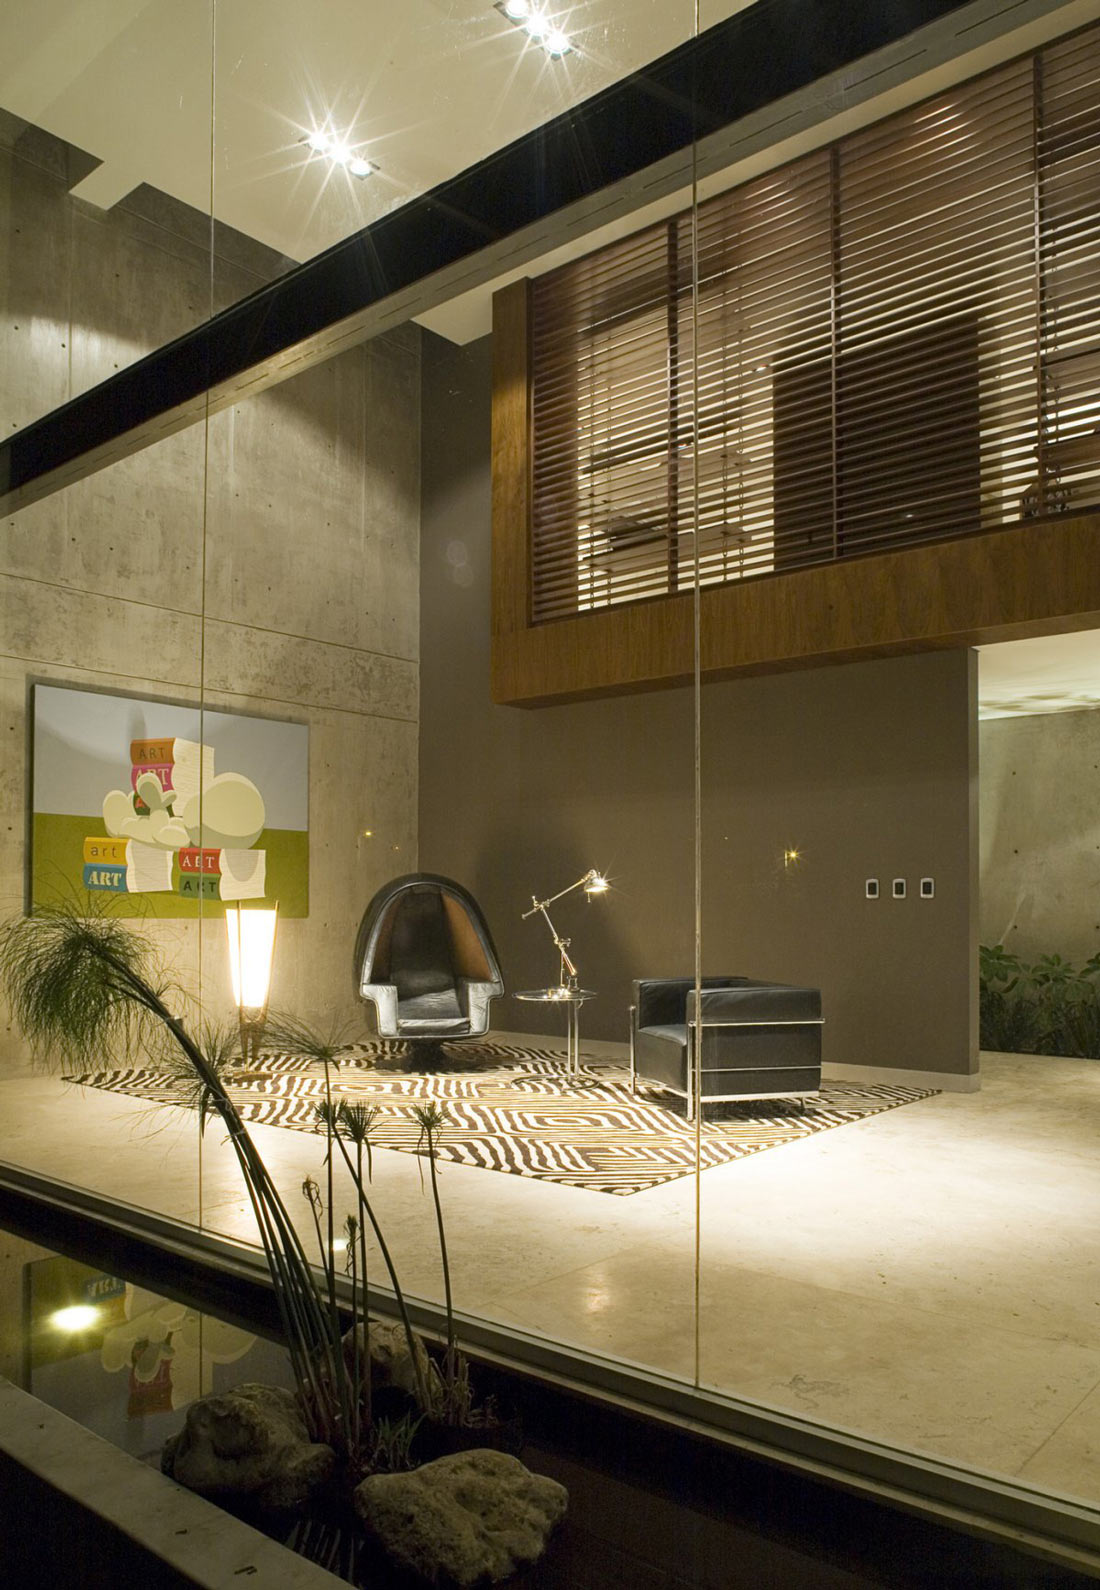 Glass Wall, Water Feature, GP House in Hidalgo, Mexico by Bitar Arquitectos